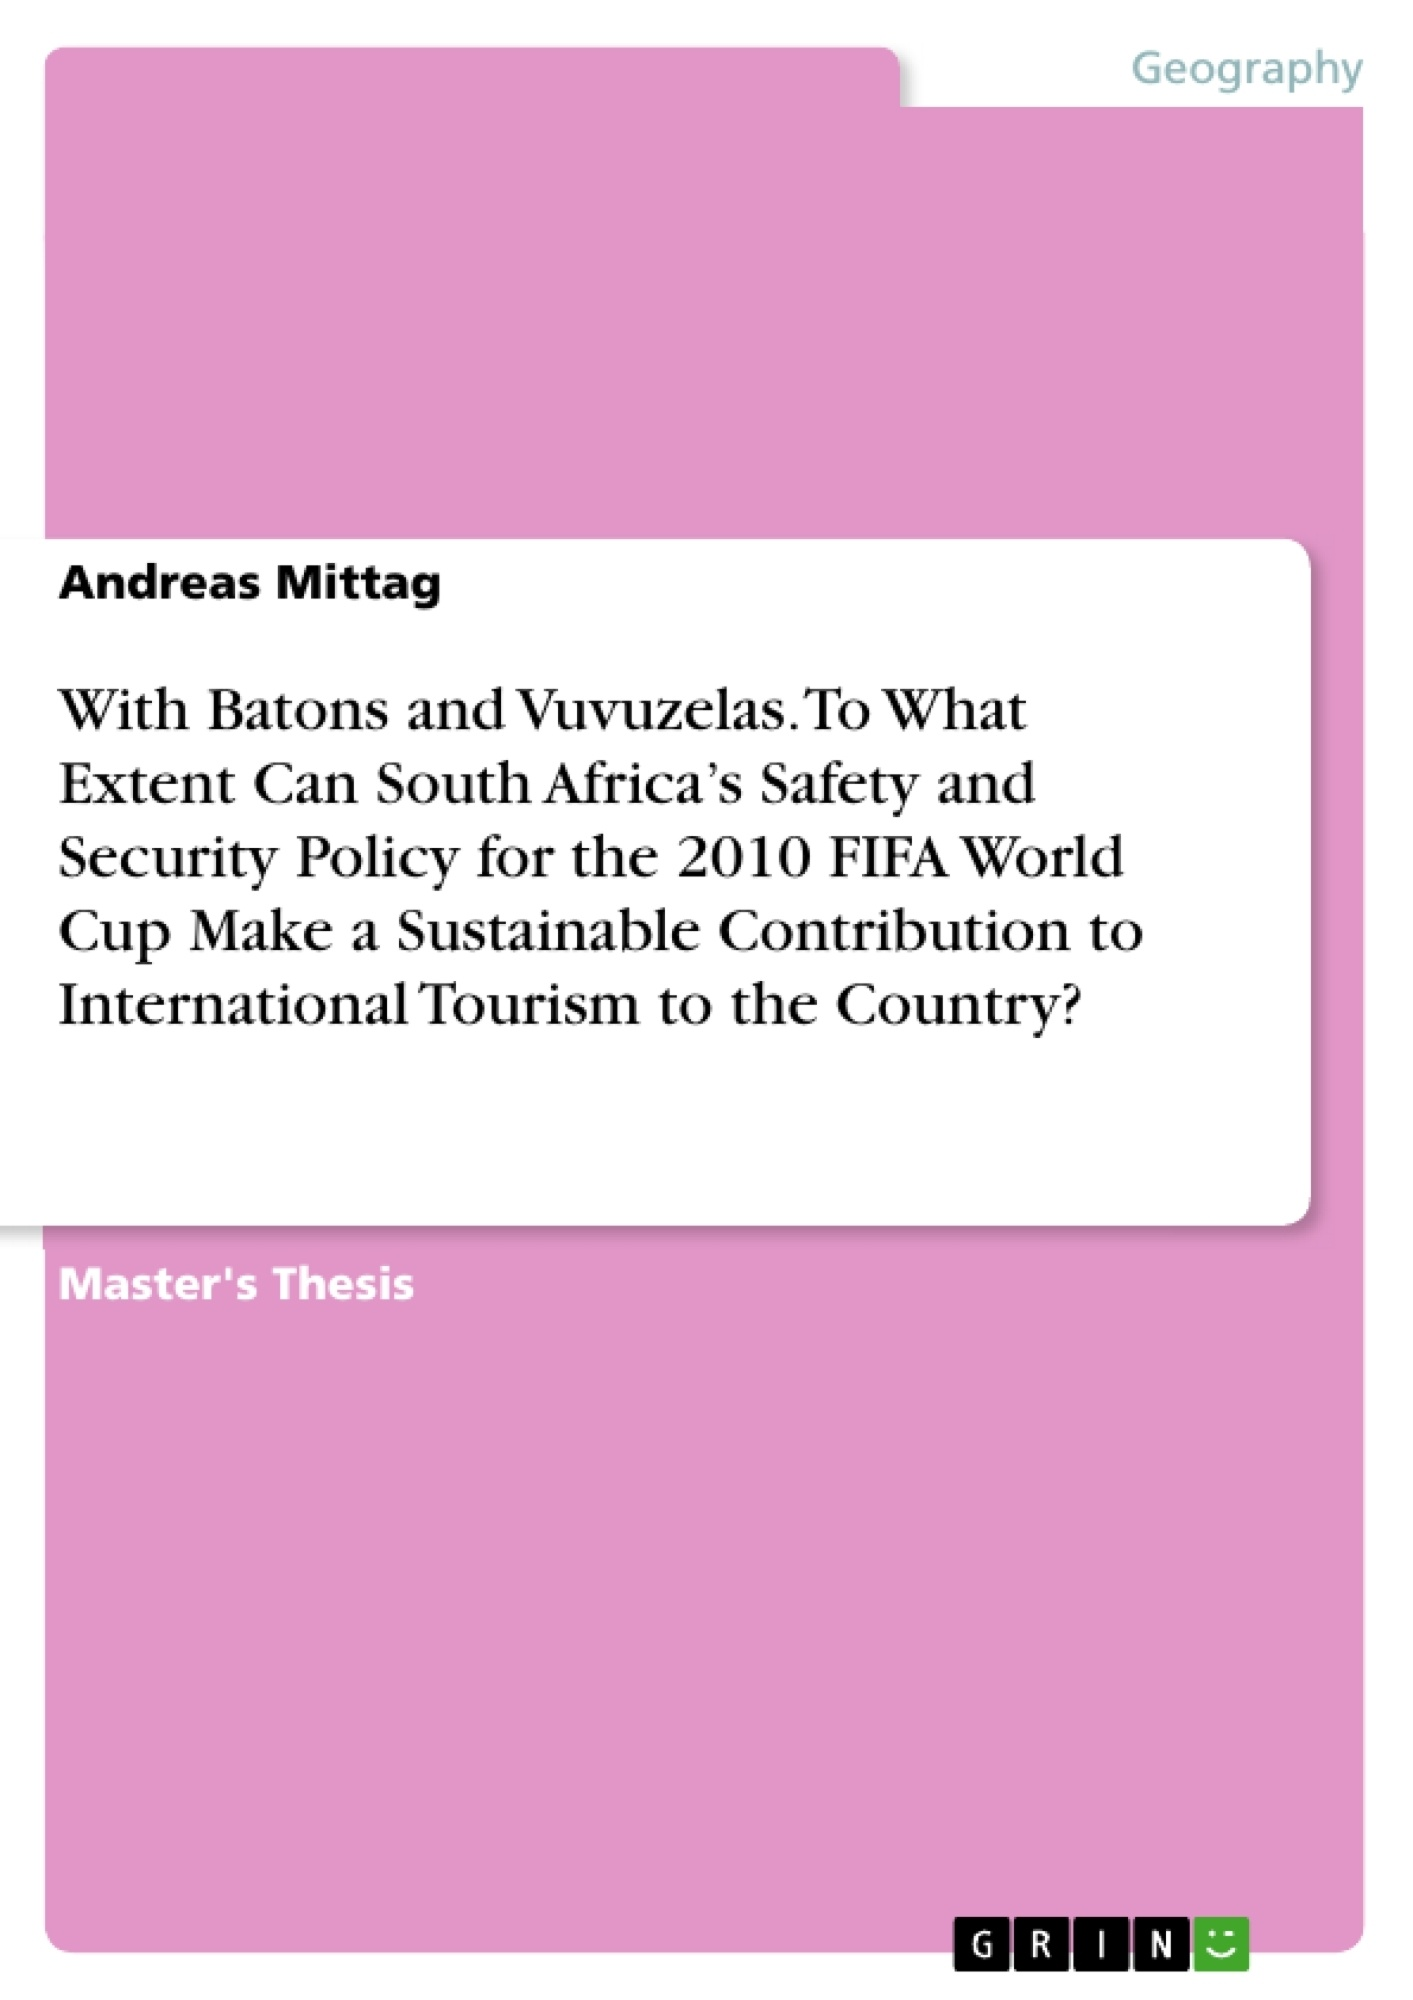 Title: With Batons and Vuvuzelas. To What Extent Can South Africa's Safety and Security Policy for the 2010 FIFA World Cup Make a Sustainable Contribution to International Tourism to the Country?